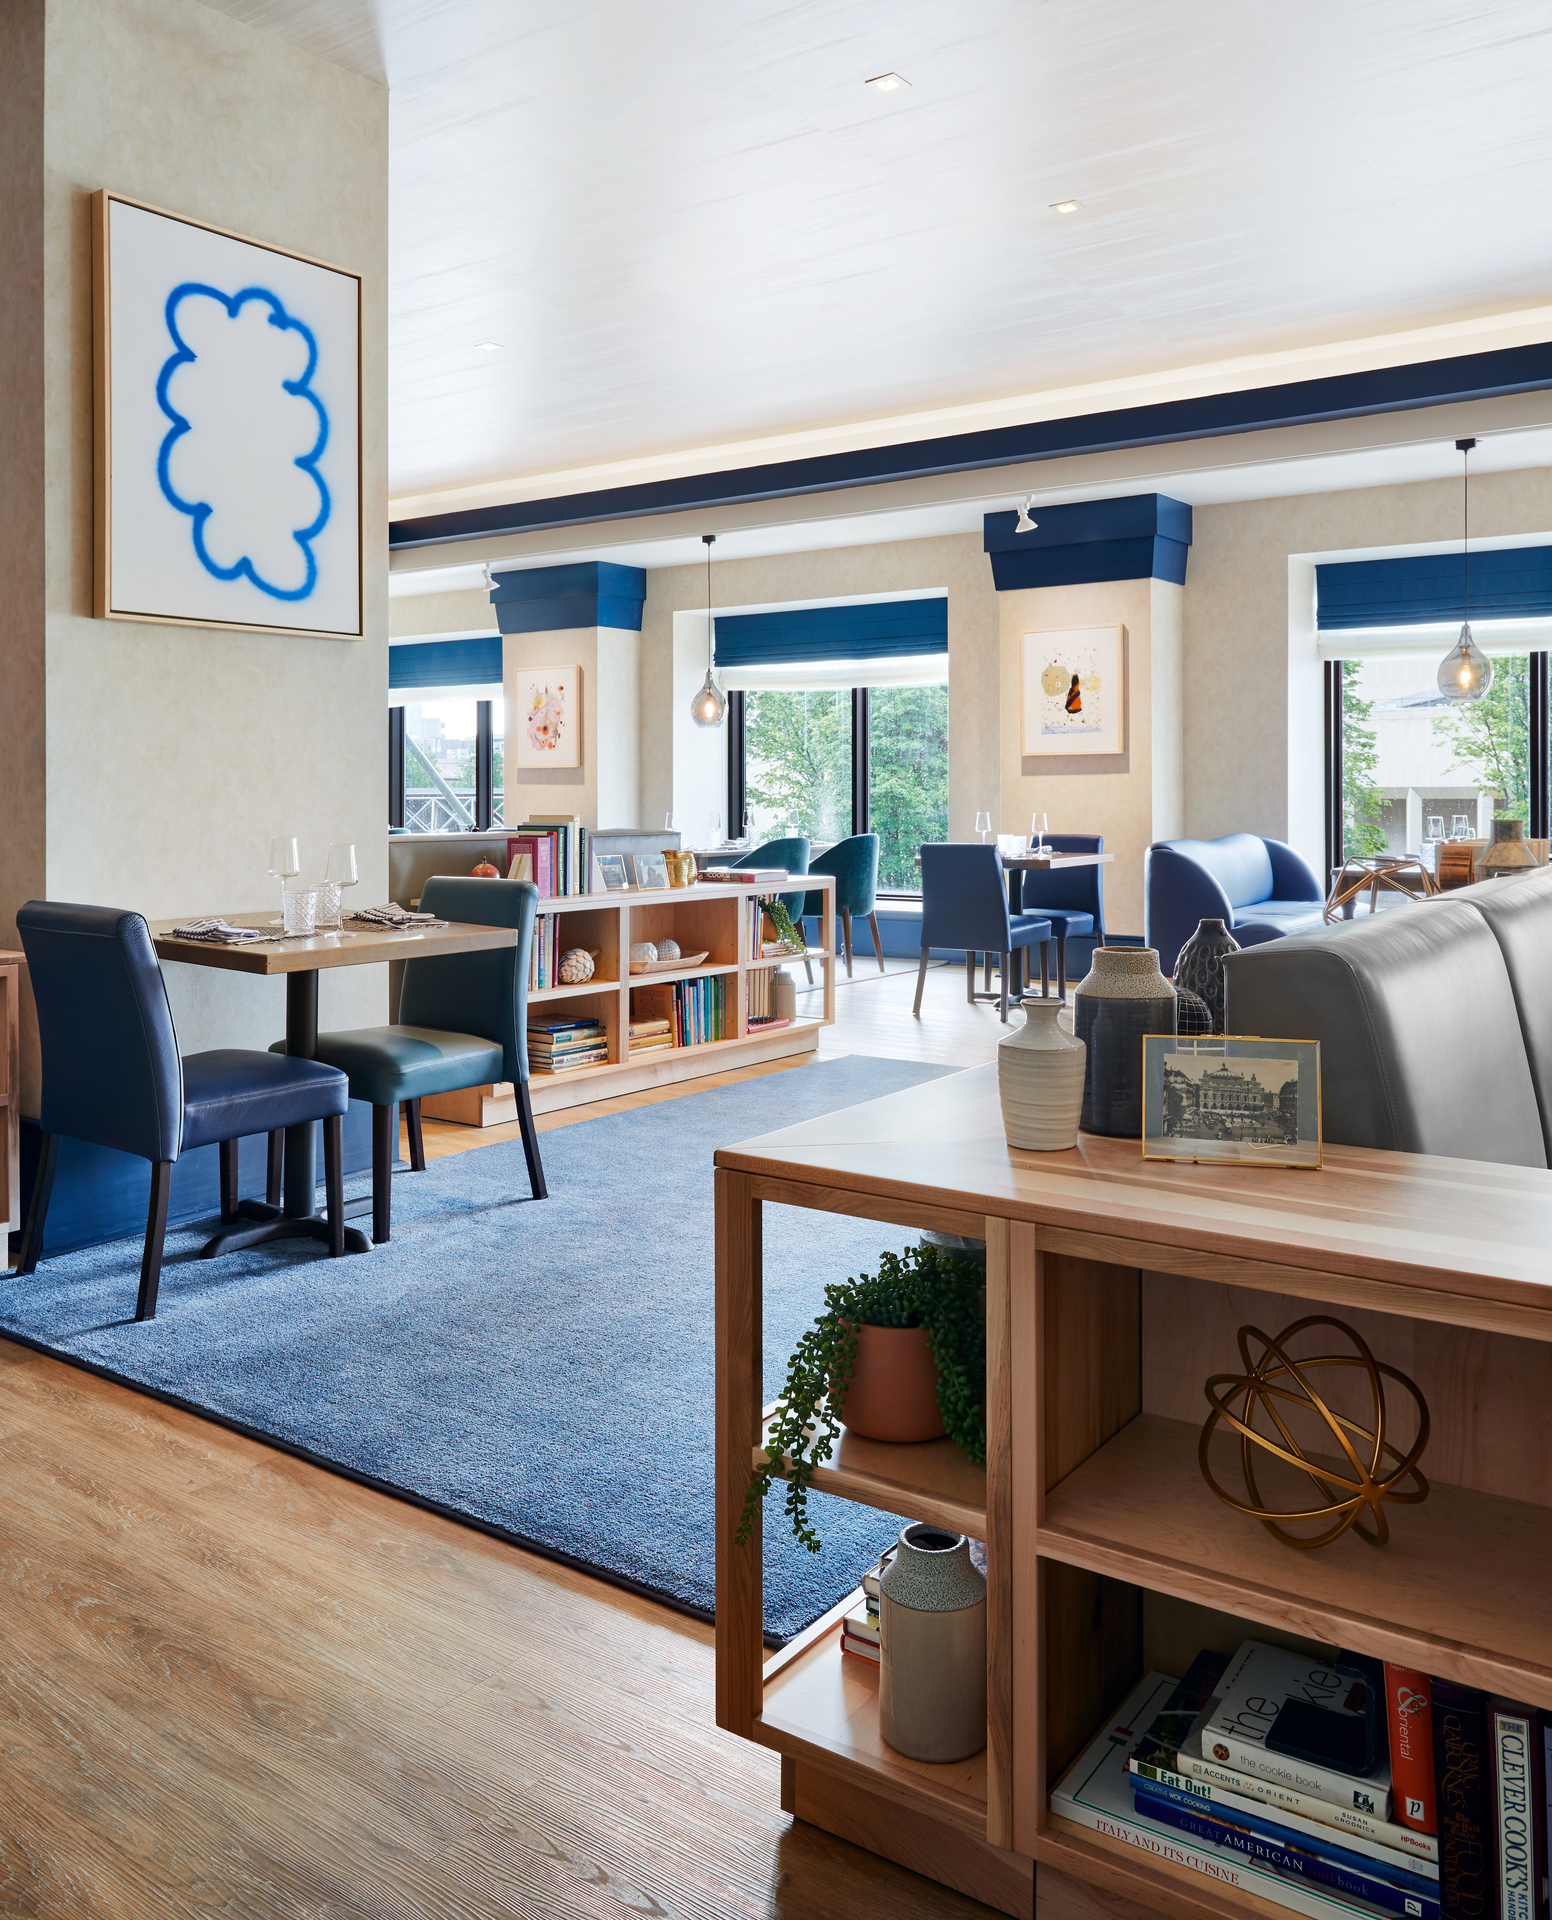 The finished spaces feature an ever-changing curated spread of contemporary art scattered throughout multiple floors and guest rooms designed to reflect the arts.